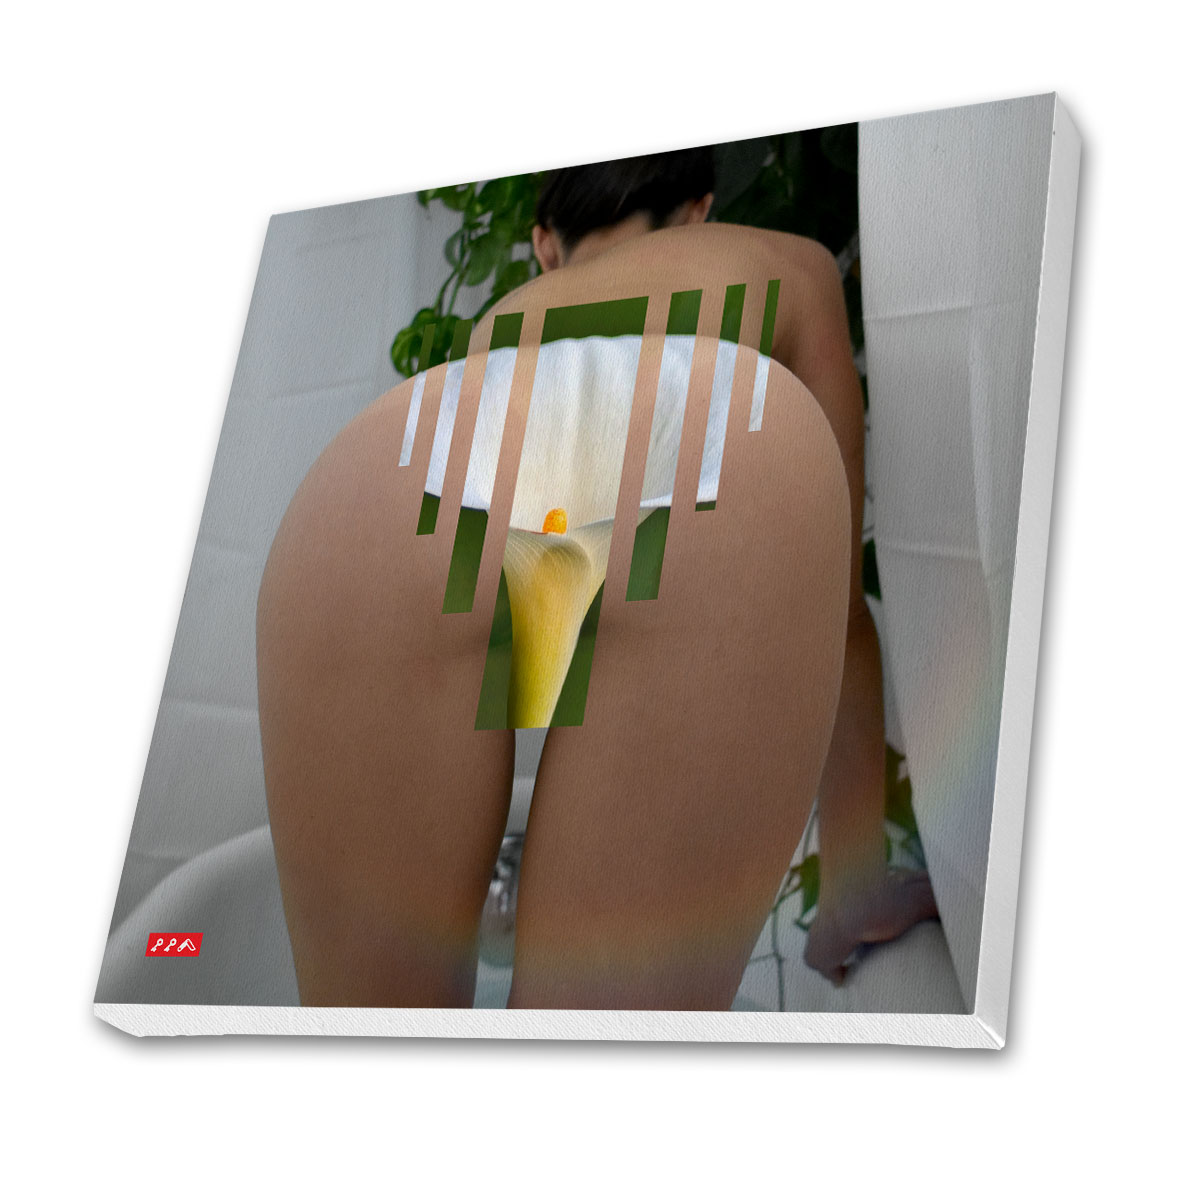 BLOOMIN BOOTY canvas prints